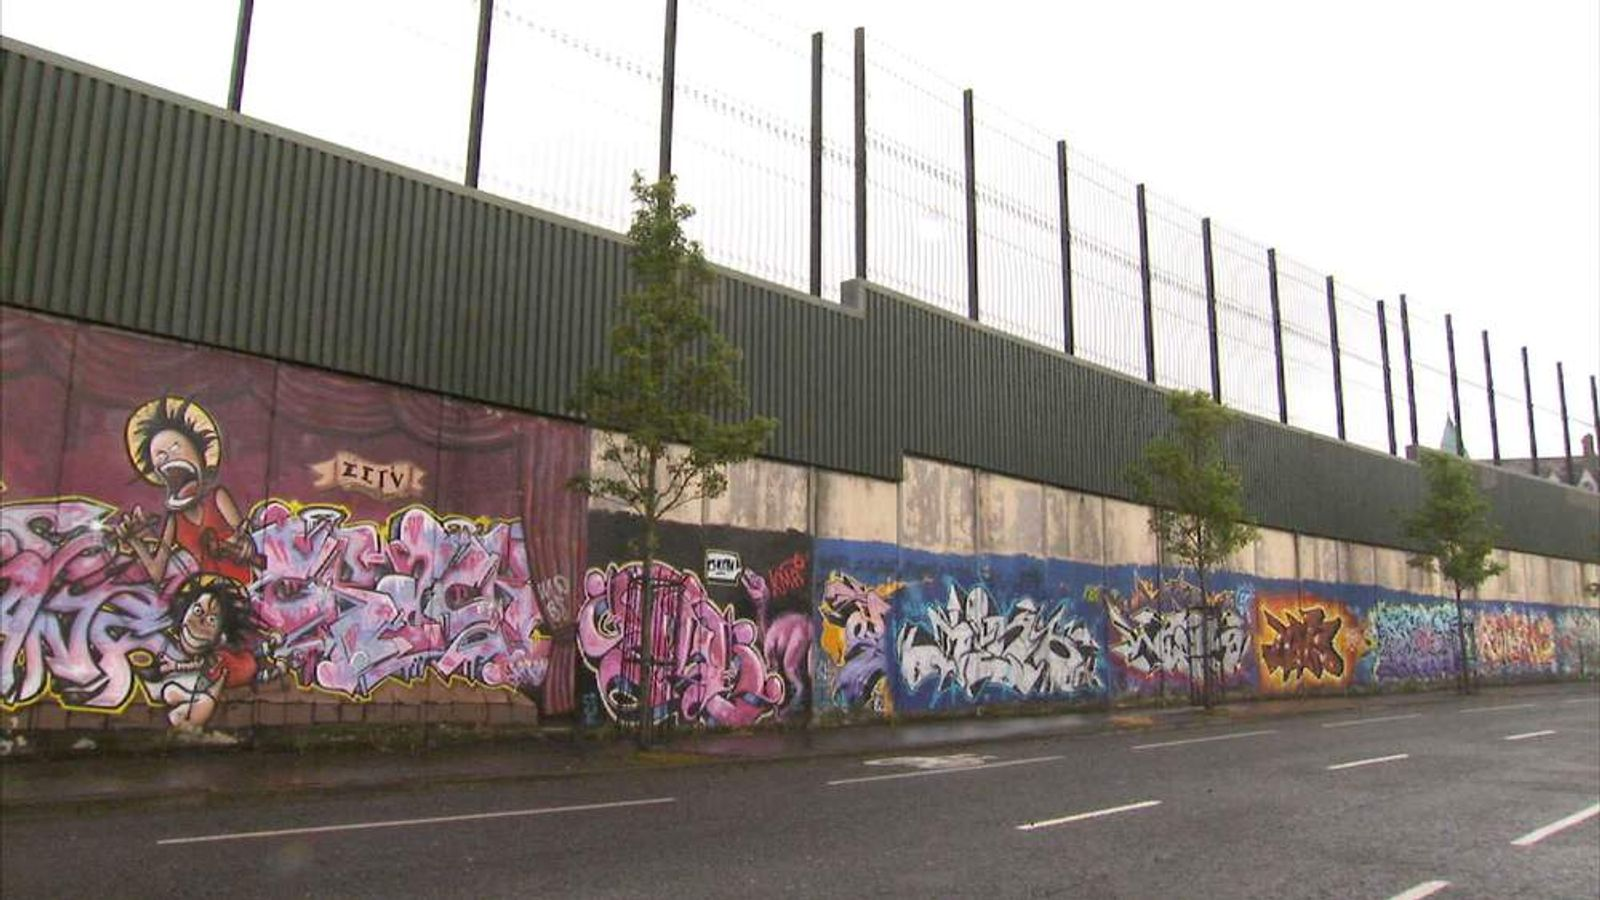 Part of a 'peace' wall in Northern Ireland